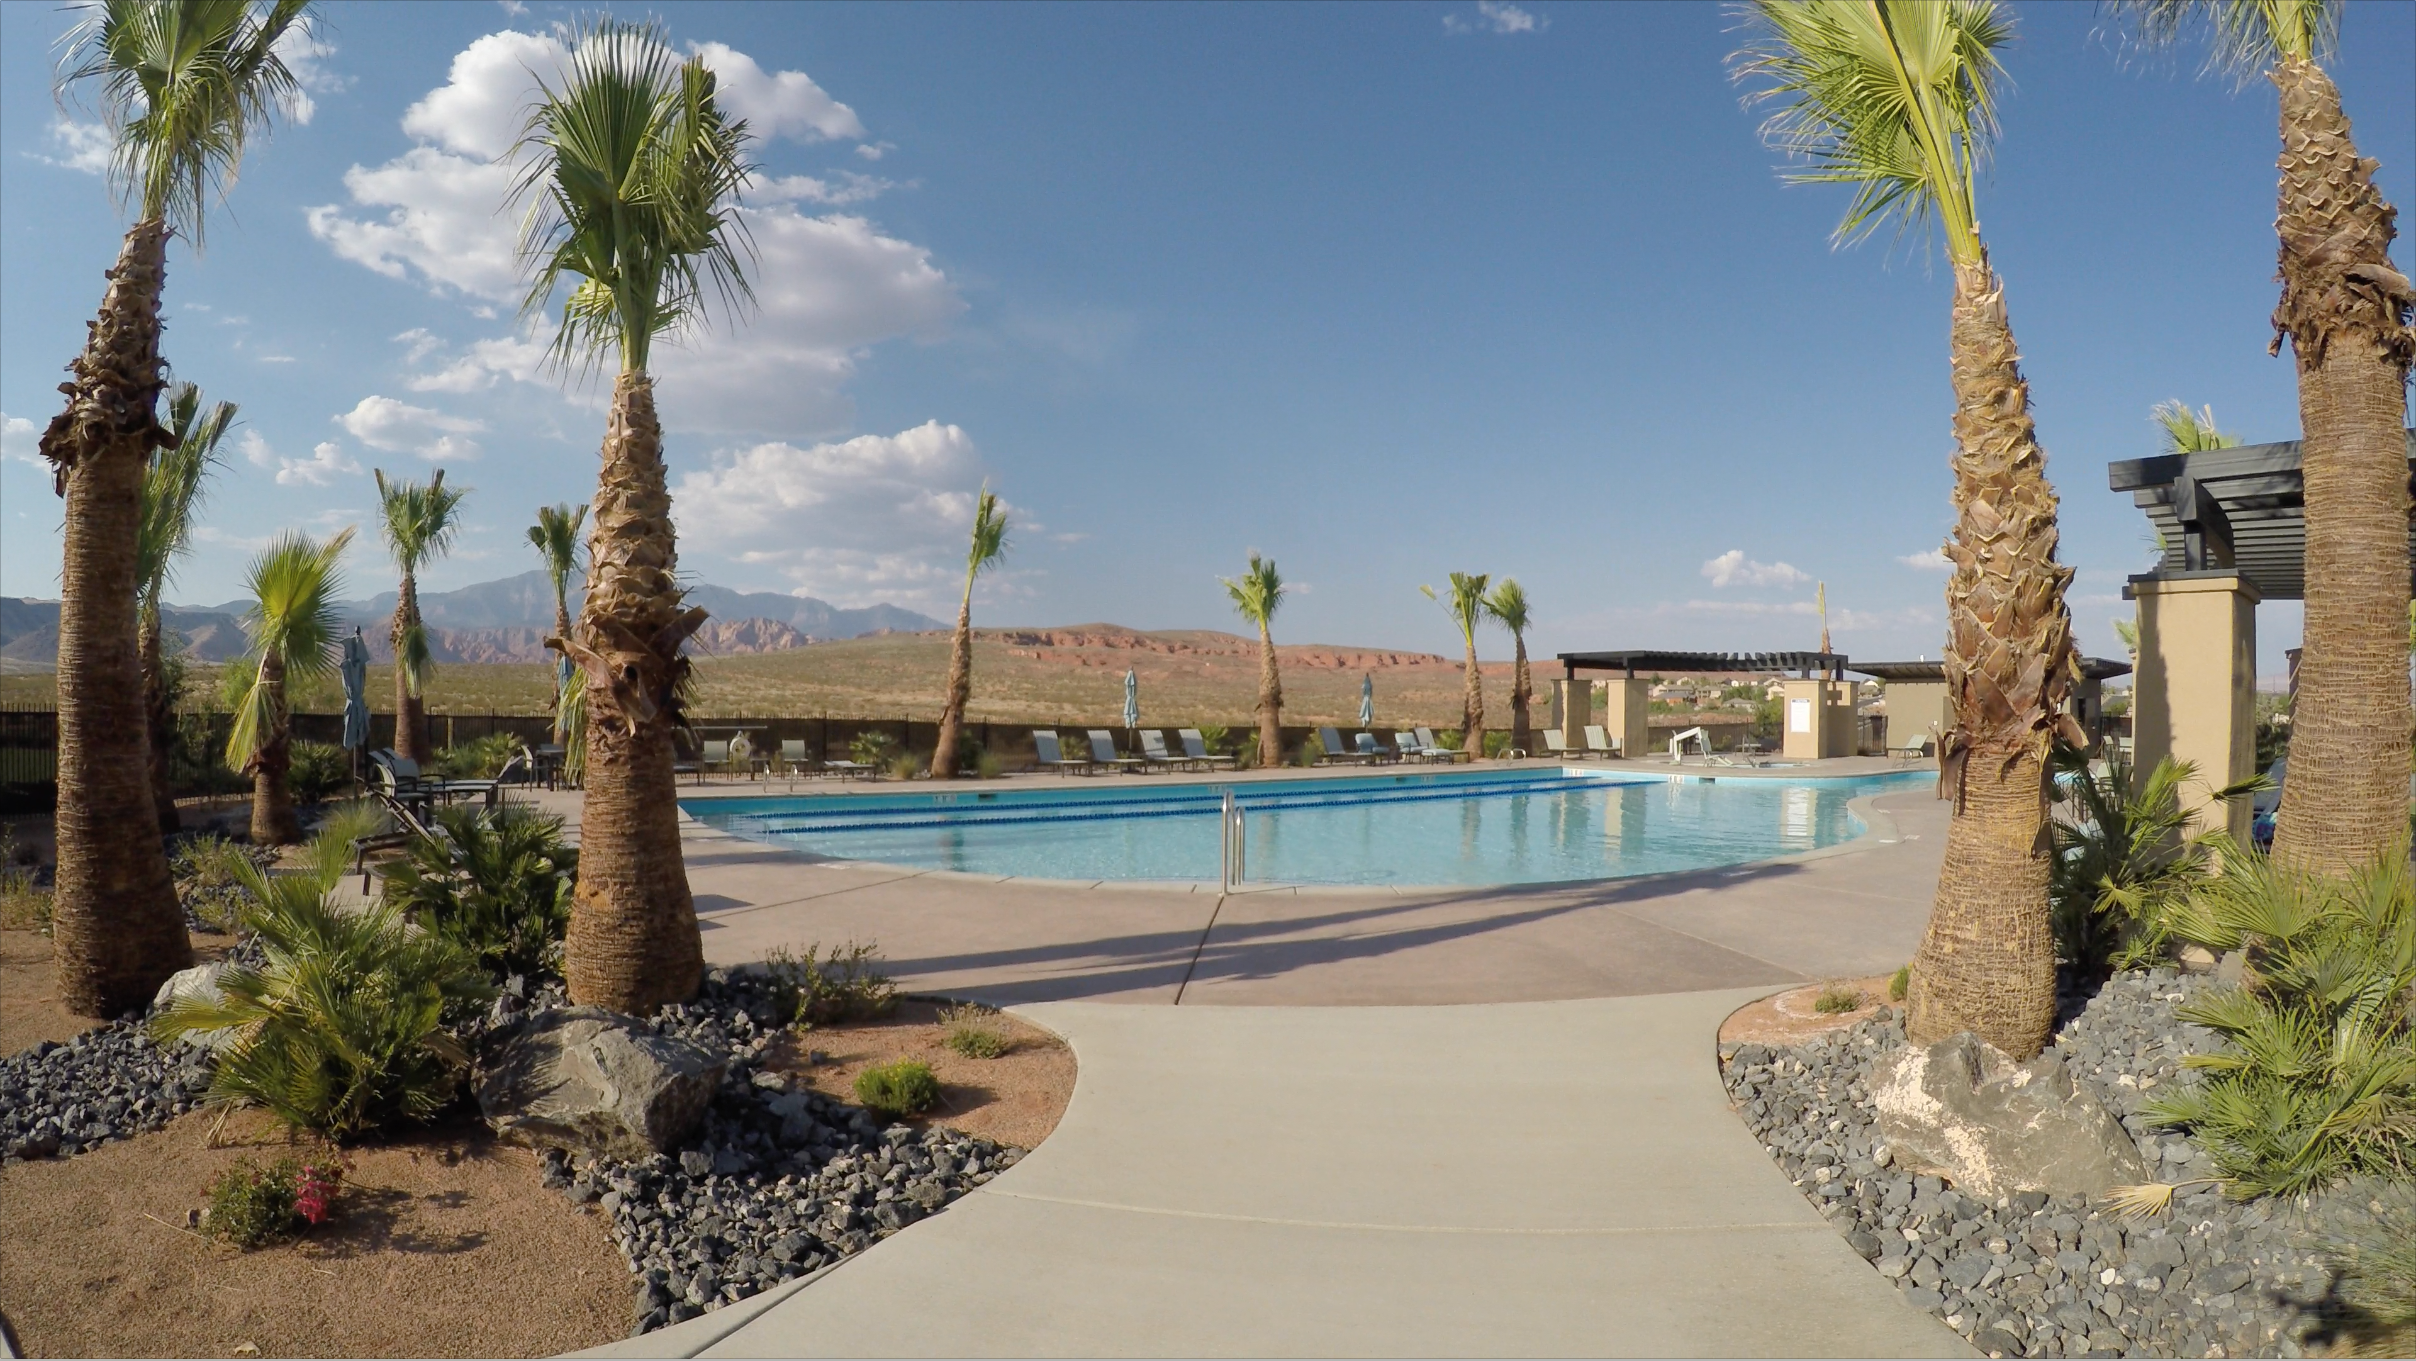 Clubhouse and pool at Brio master-planned community by John Fisher Homes Southern Utah. St. George, Utah, circa August 2016   Image courtesy of Jack Fisher Homes, St. George News